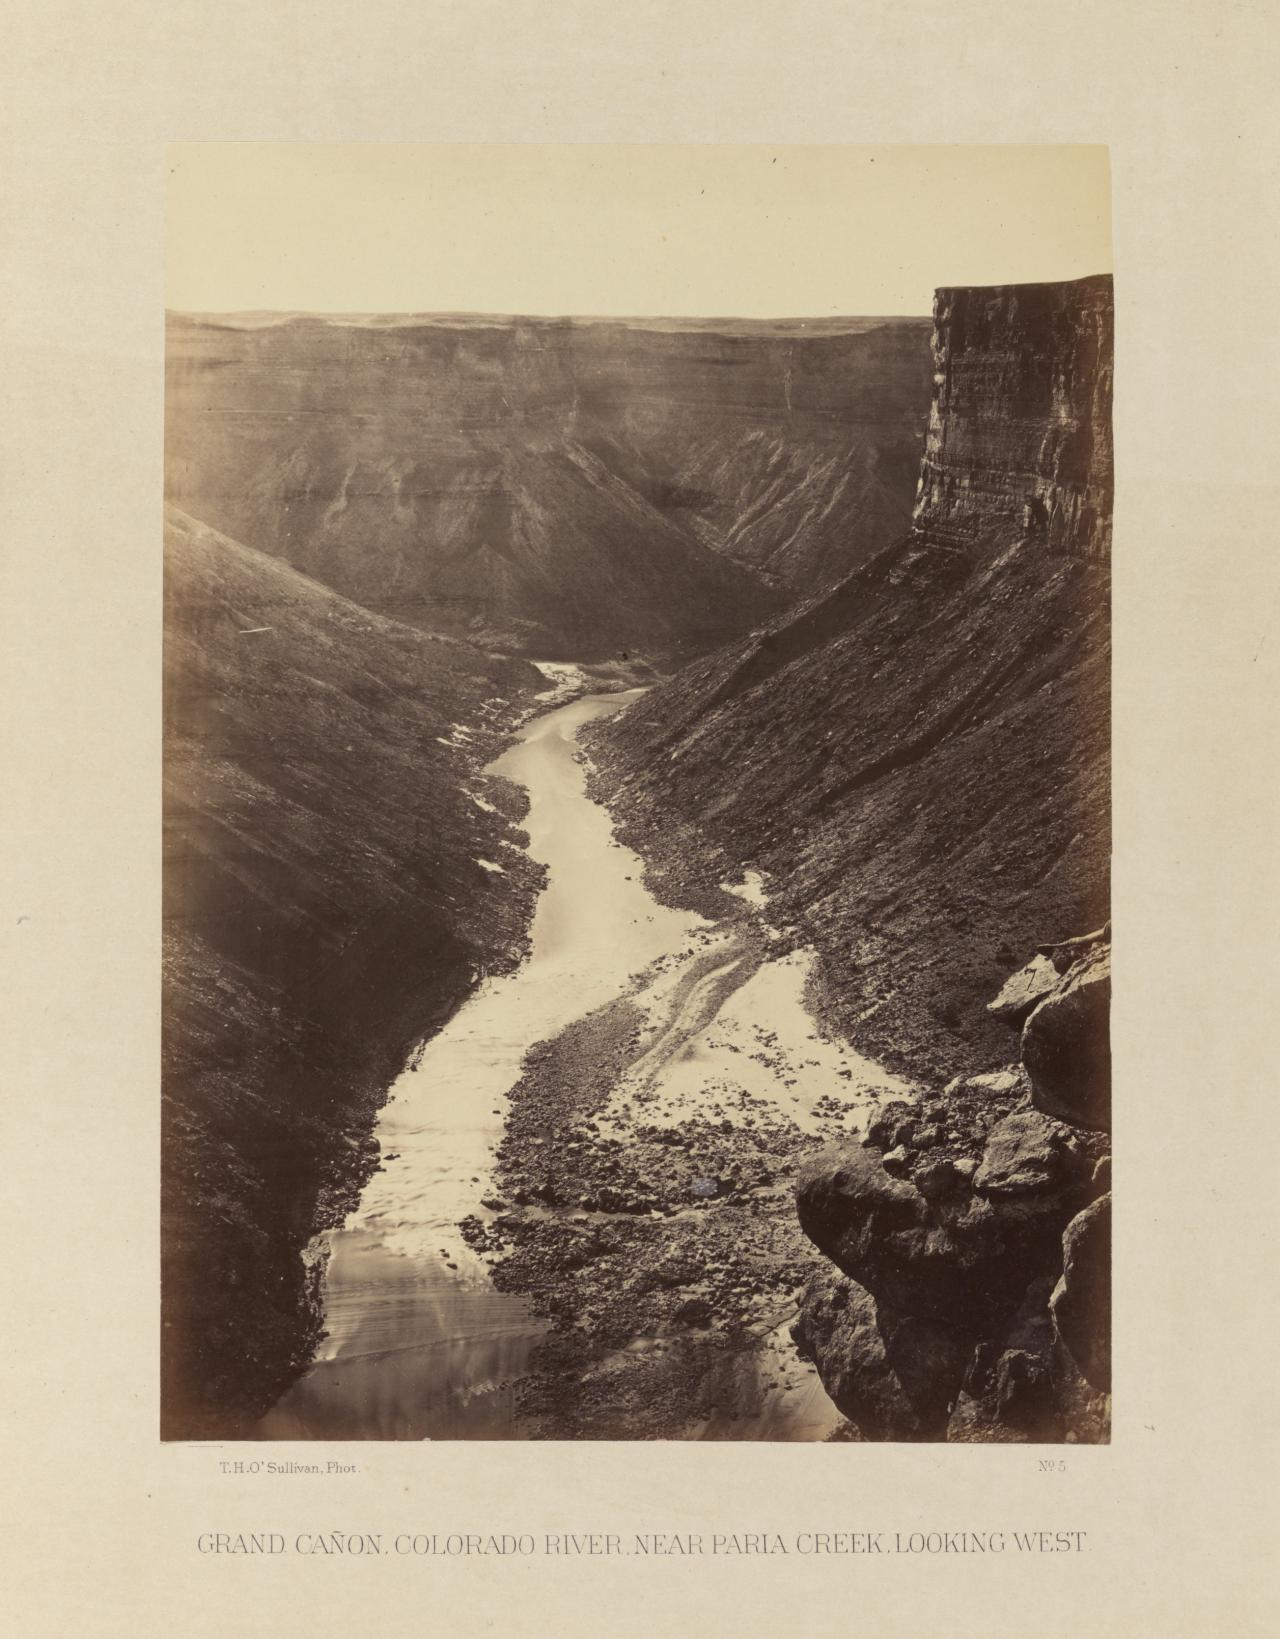 Grand Canyon, Colorado River, near Paria Creek, looking west